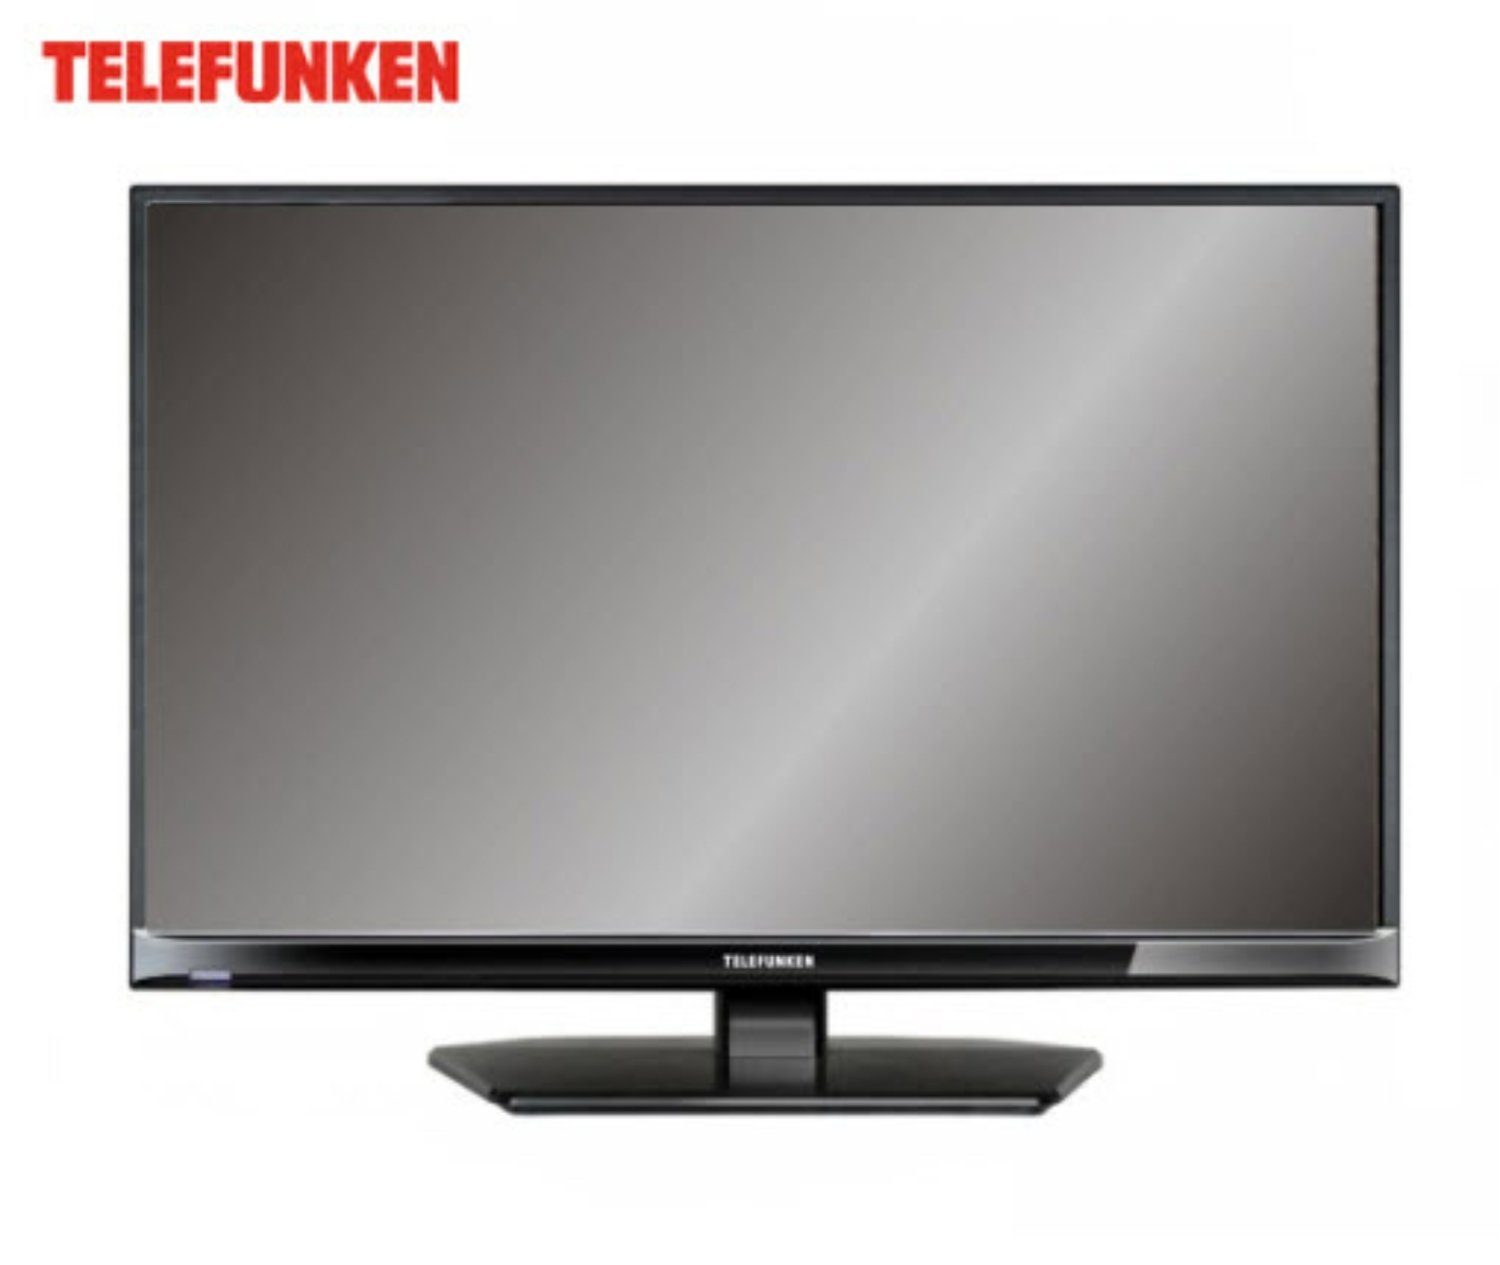 "R2499 vat incl Telefunken TLEDD-32FHDA 32"" HD LED TV"